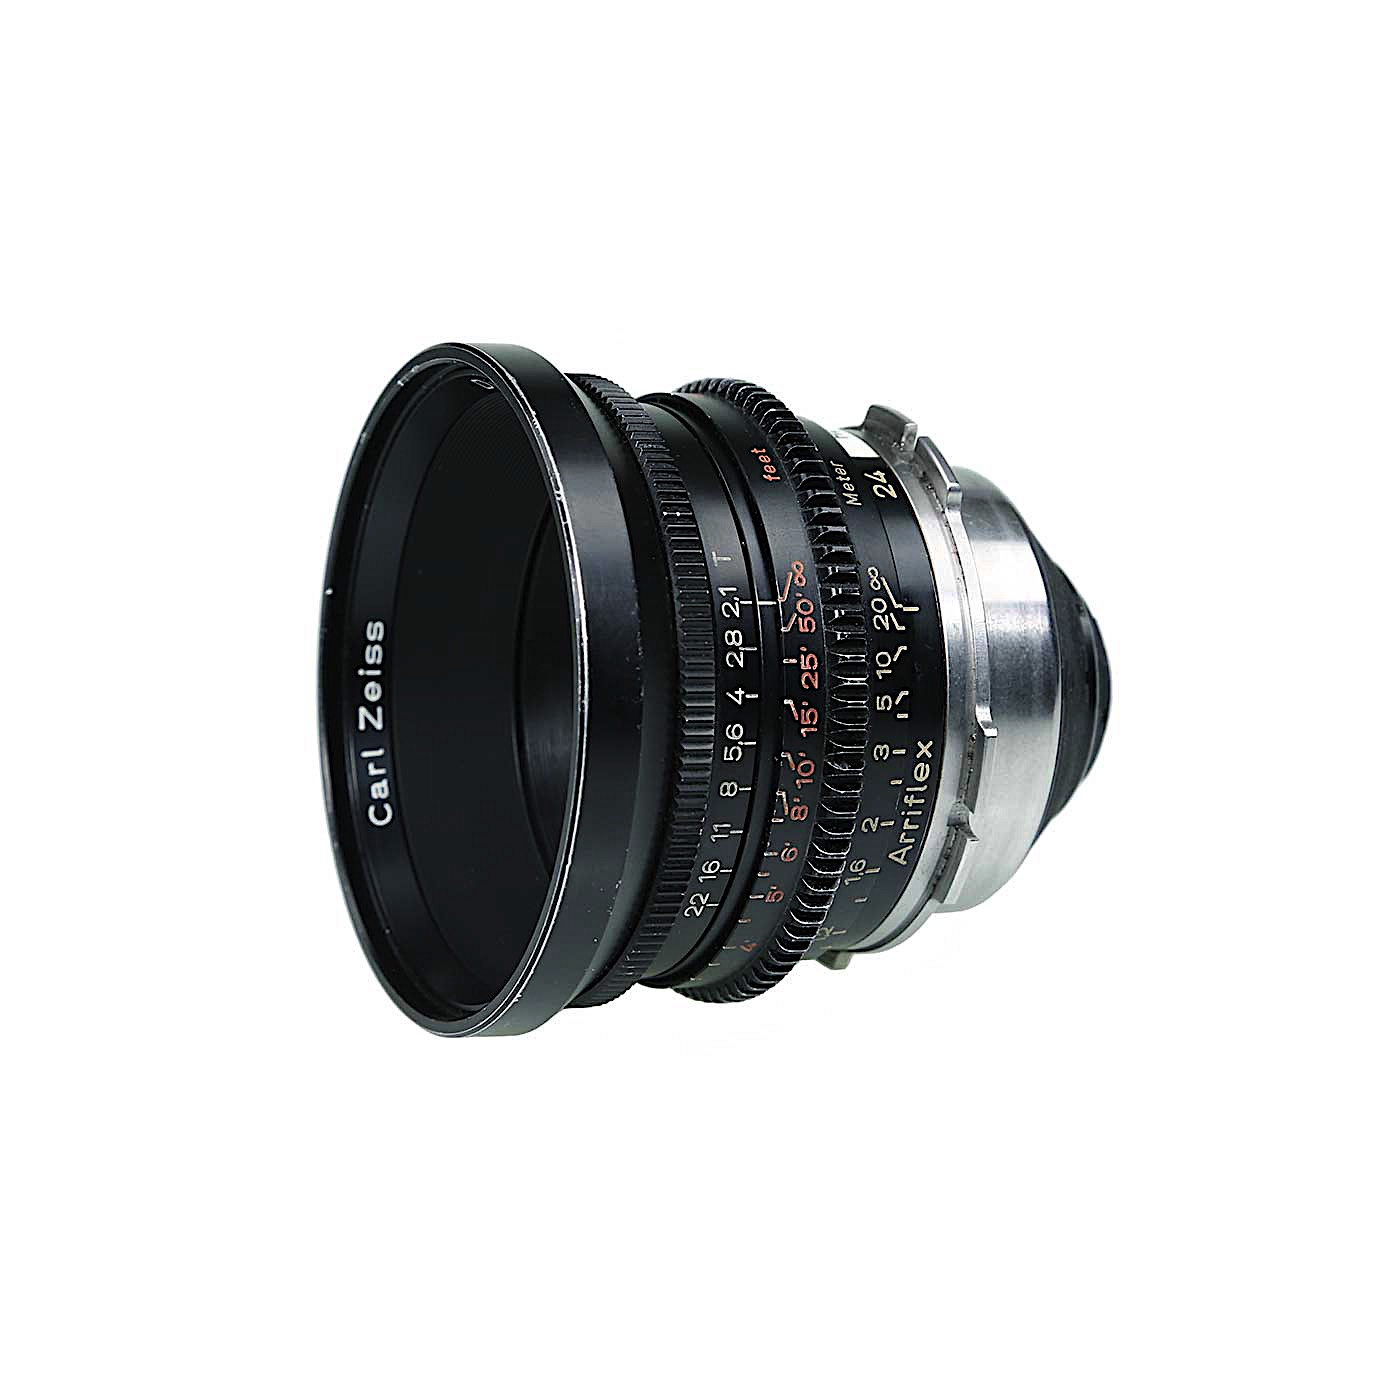 Zeiss 24mm T2.1 PL (Standard) Close Focus Prime Lens